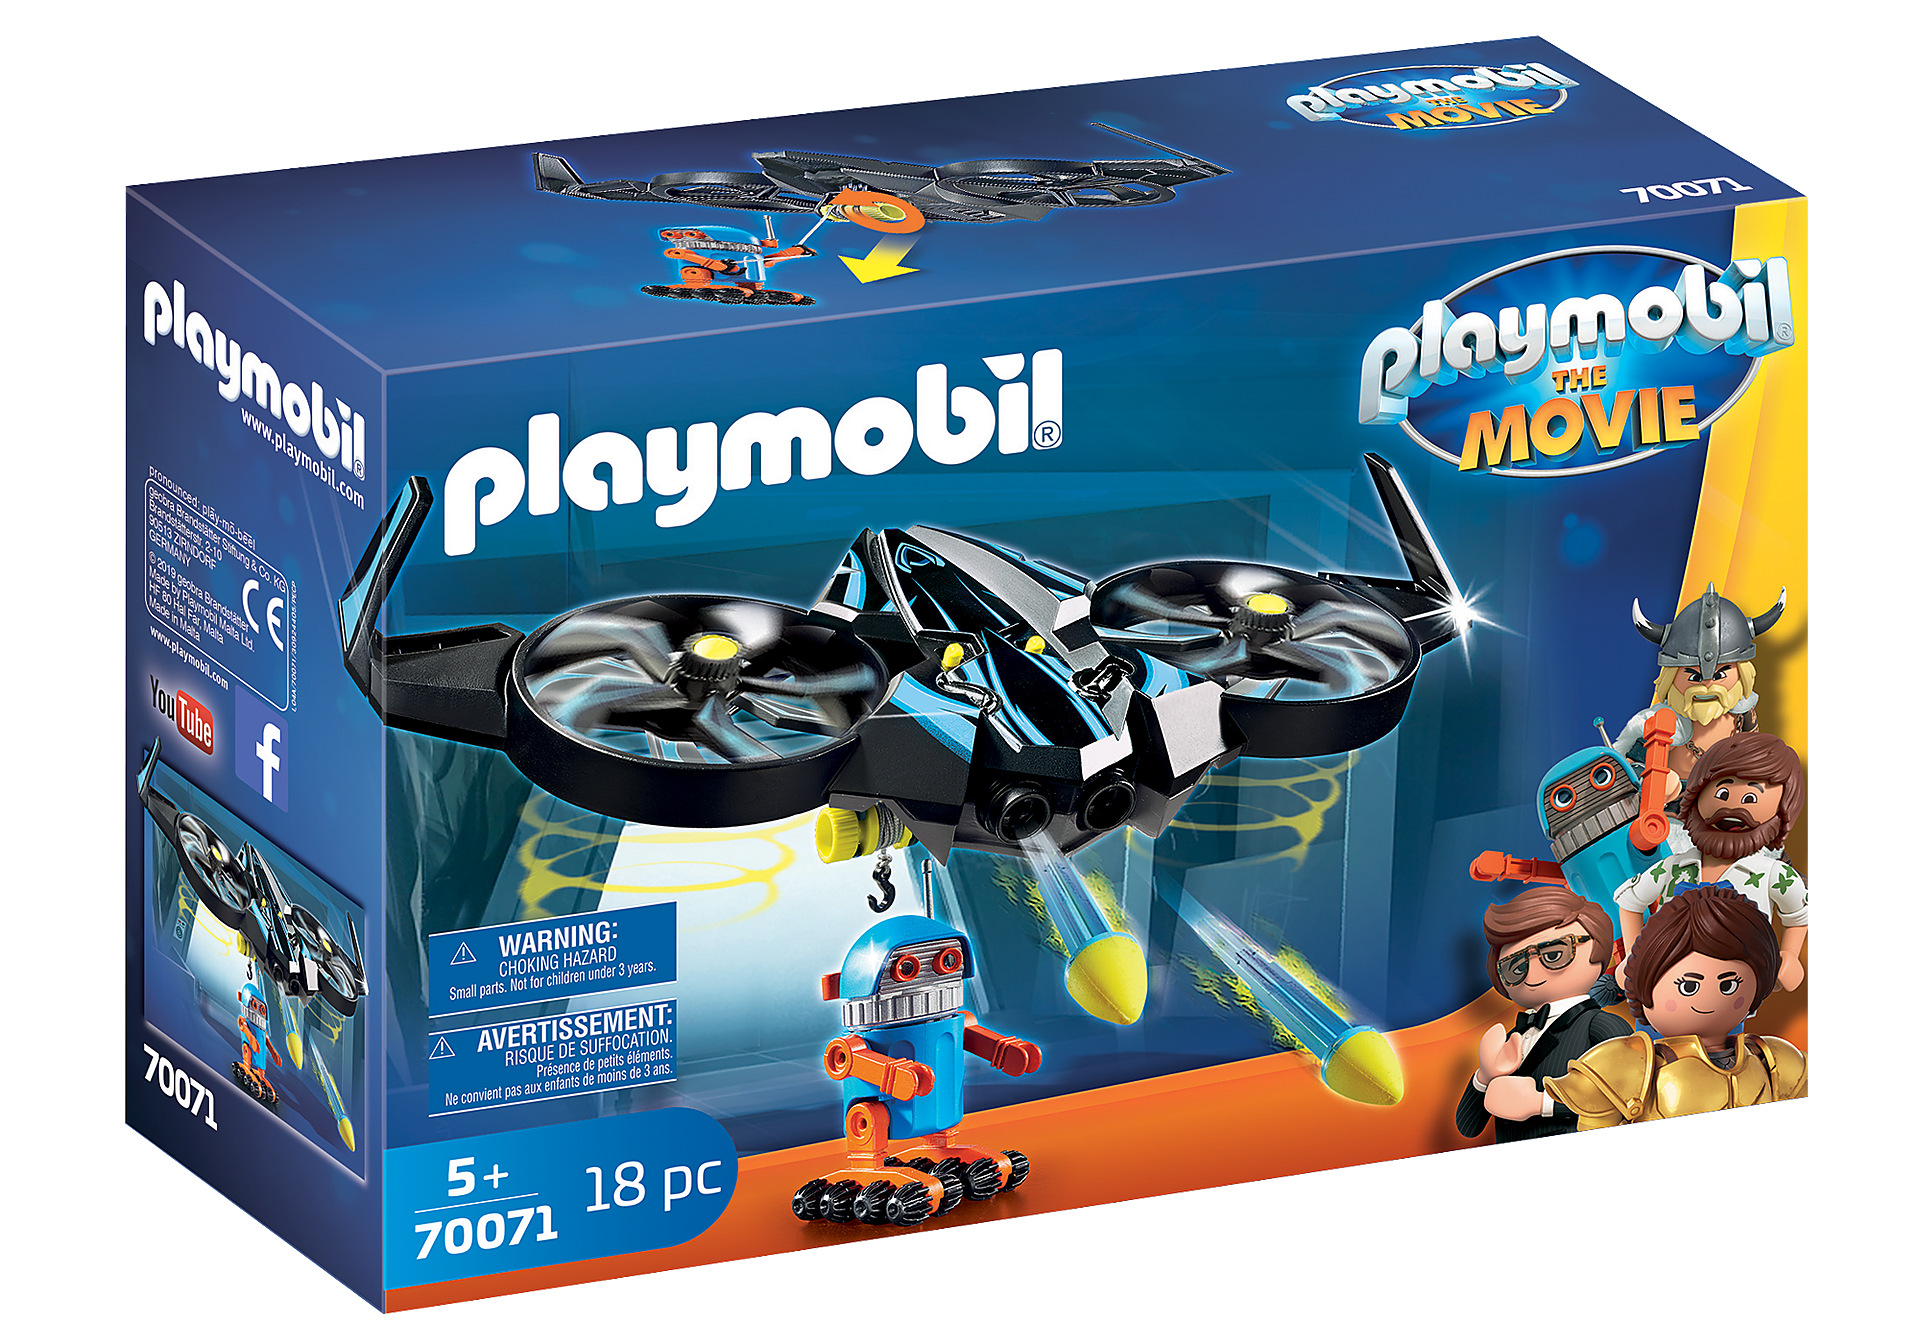 70071 PLAYMOBIL:THE MOVIE Robotitron mit Drohne zoom image2